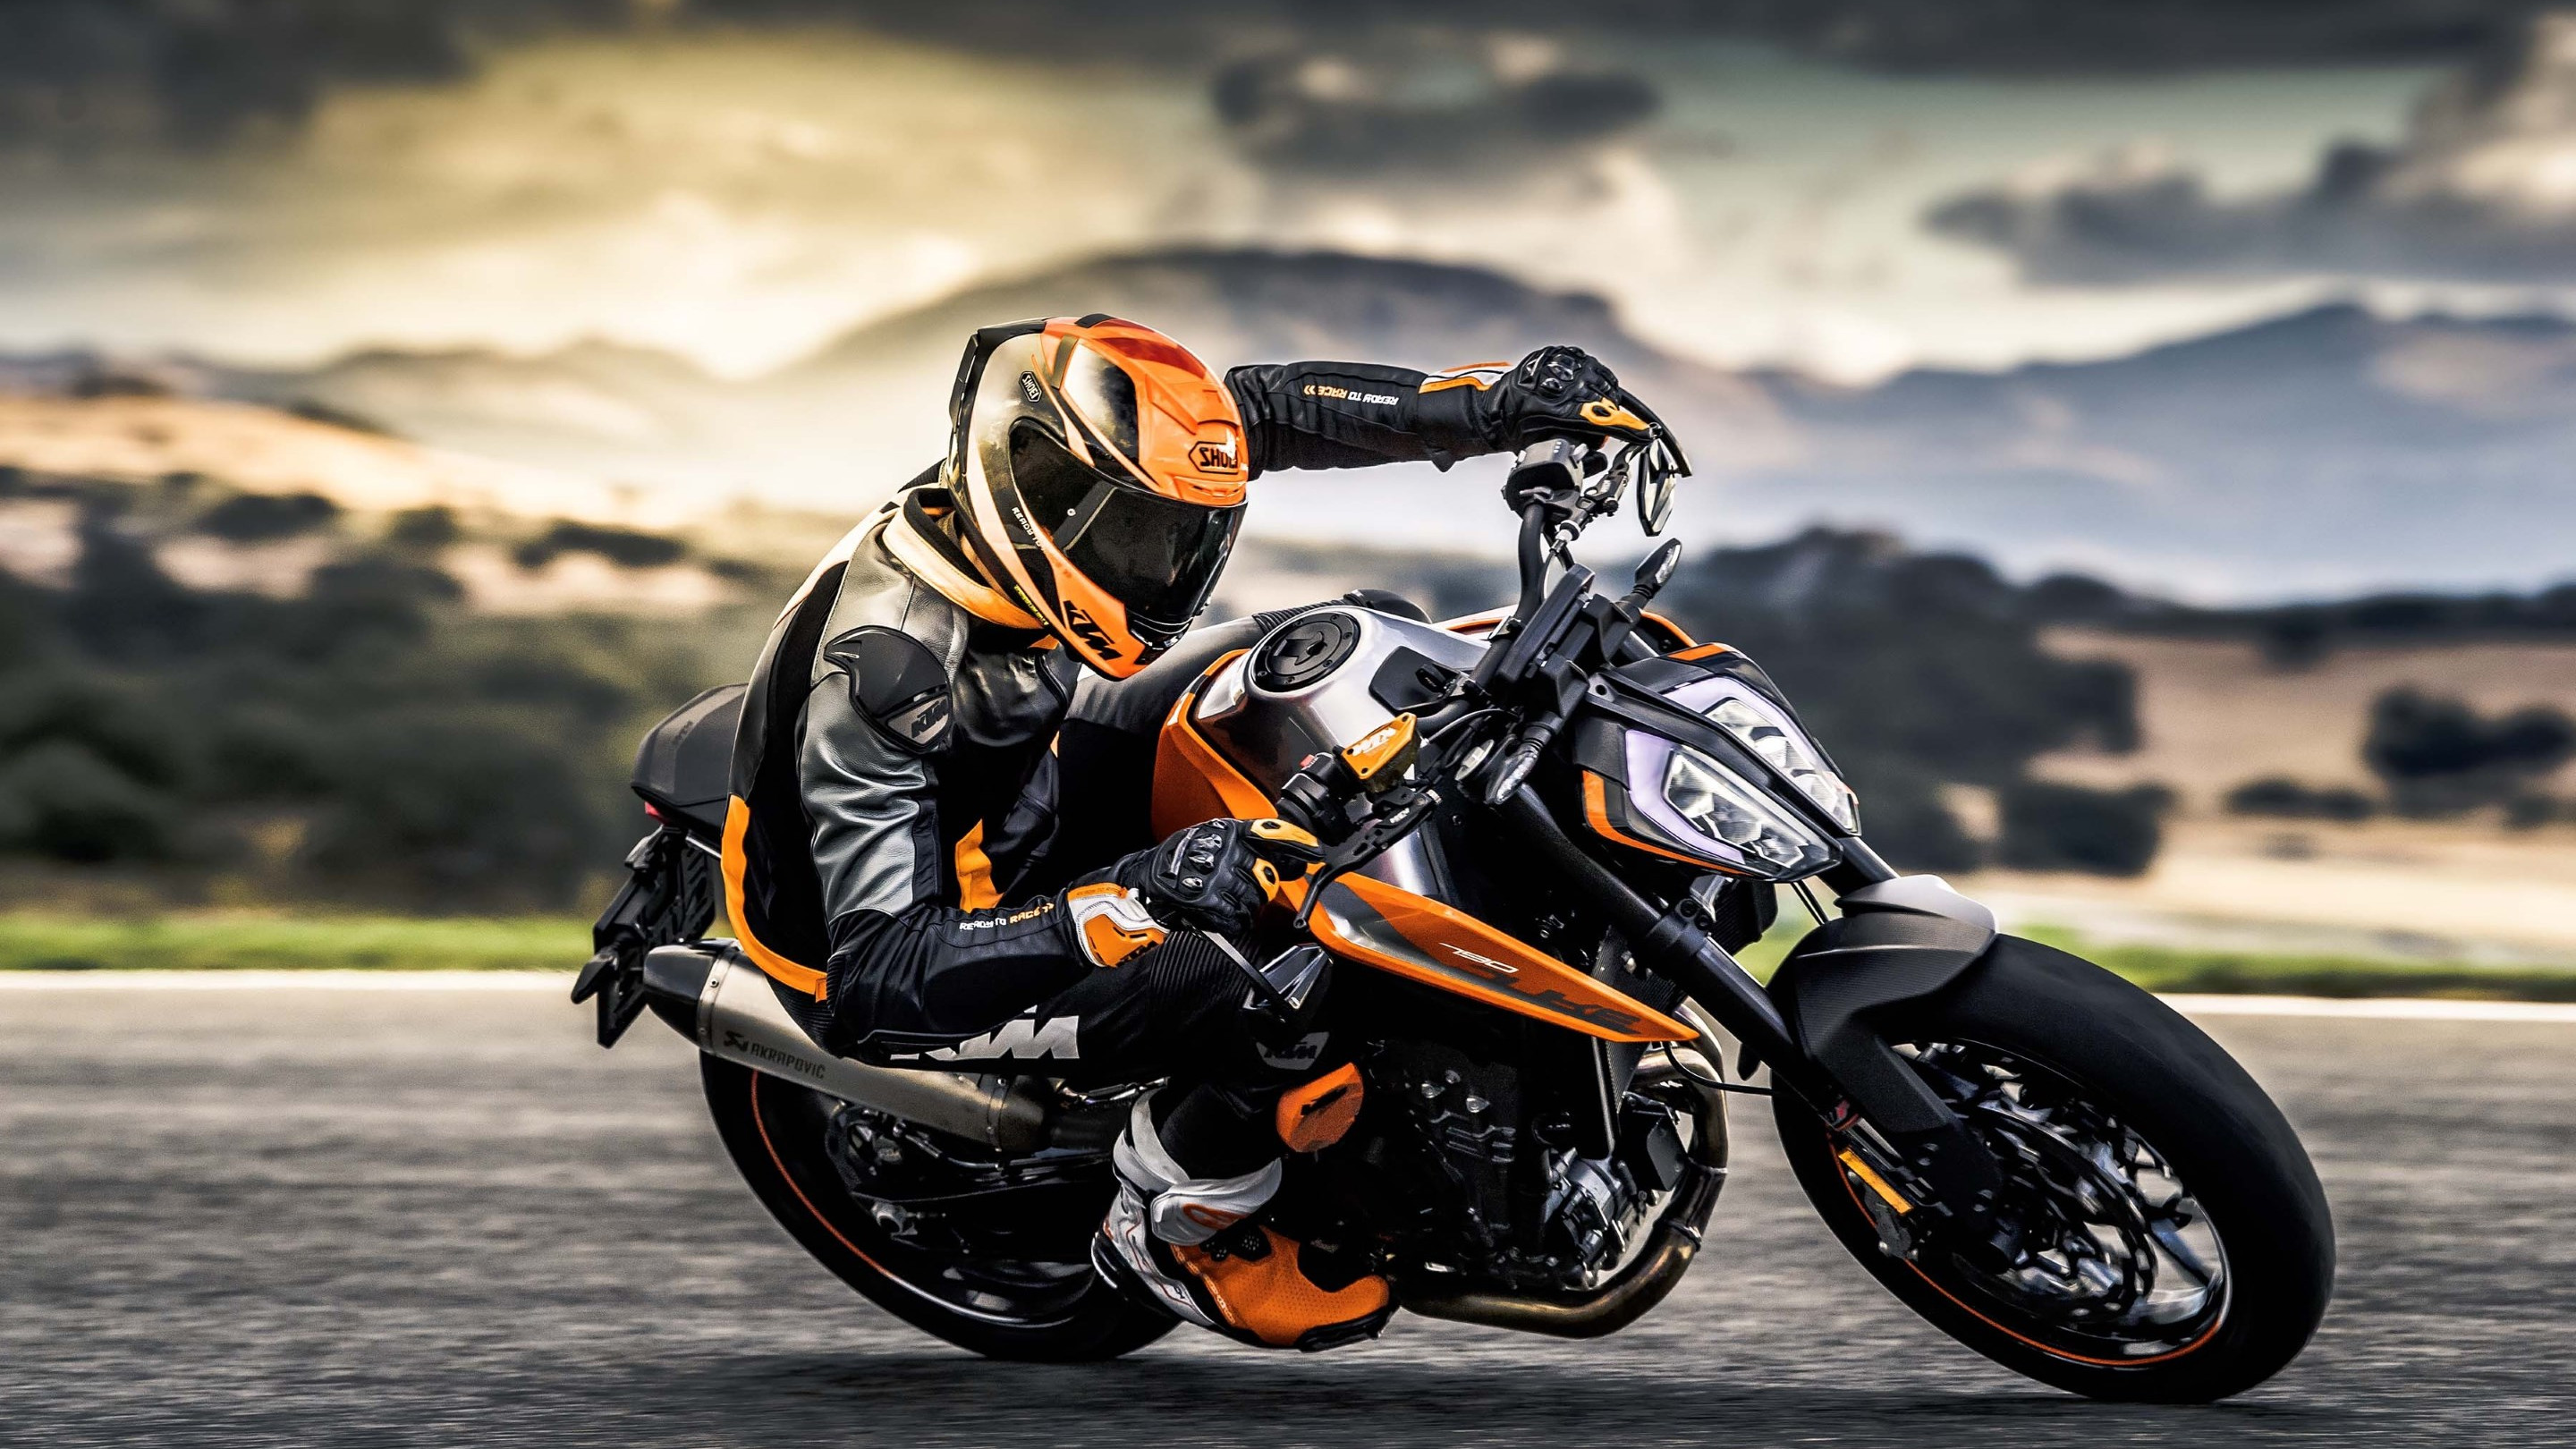 KTM 790 Duke | 2880x1620 wallpaper